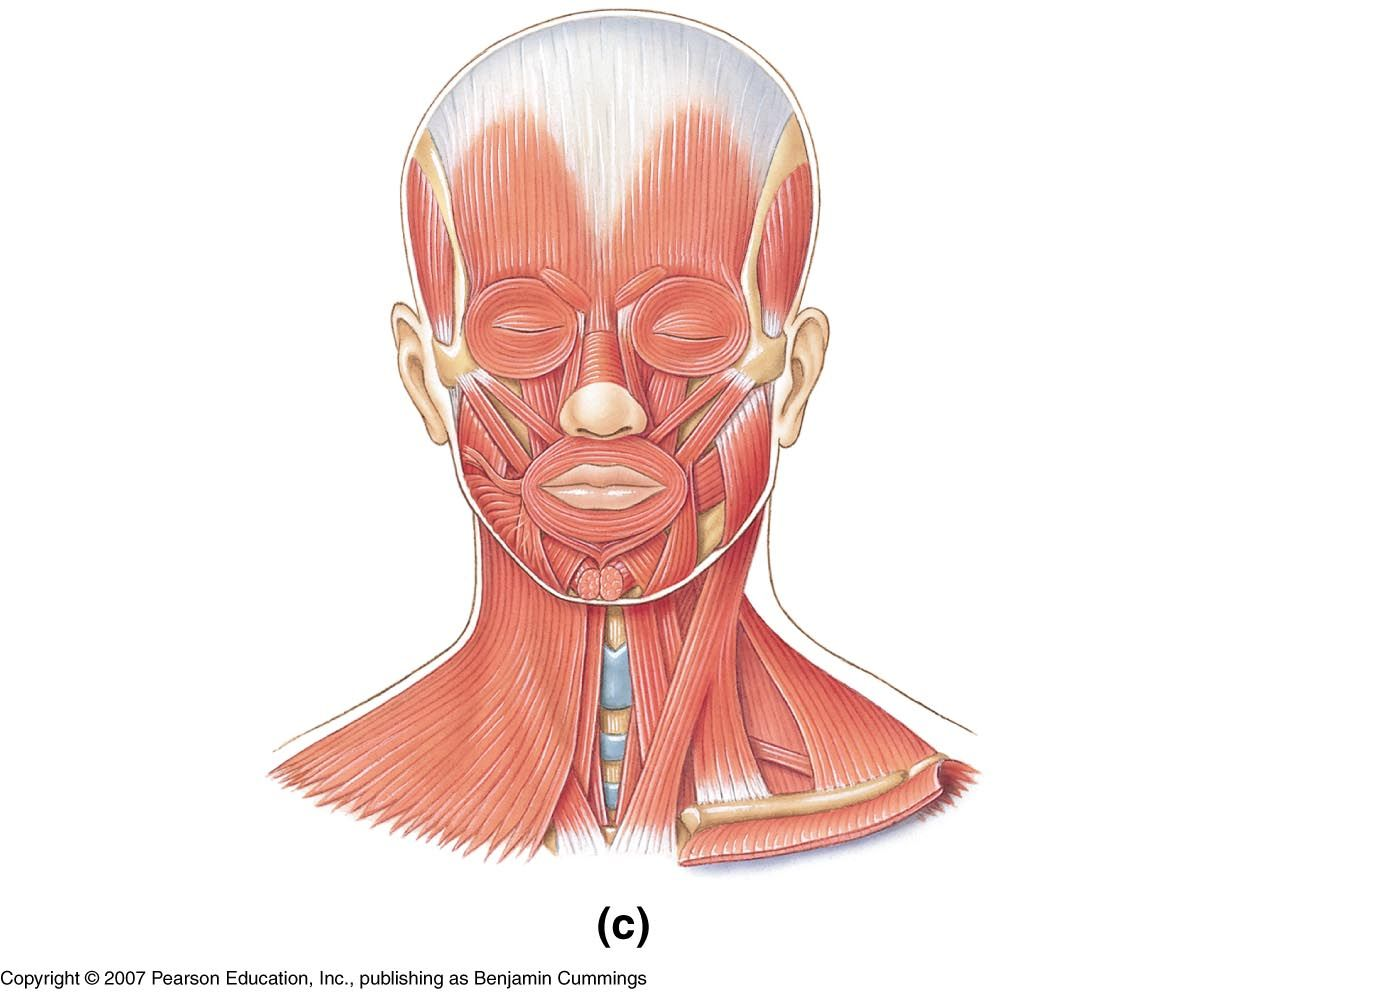 Face Muscles Diagram Wiring For Heat Pump Of The And Neck Unlabeled Study Resources